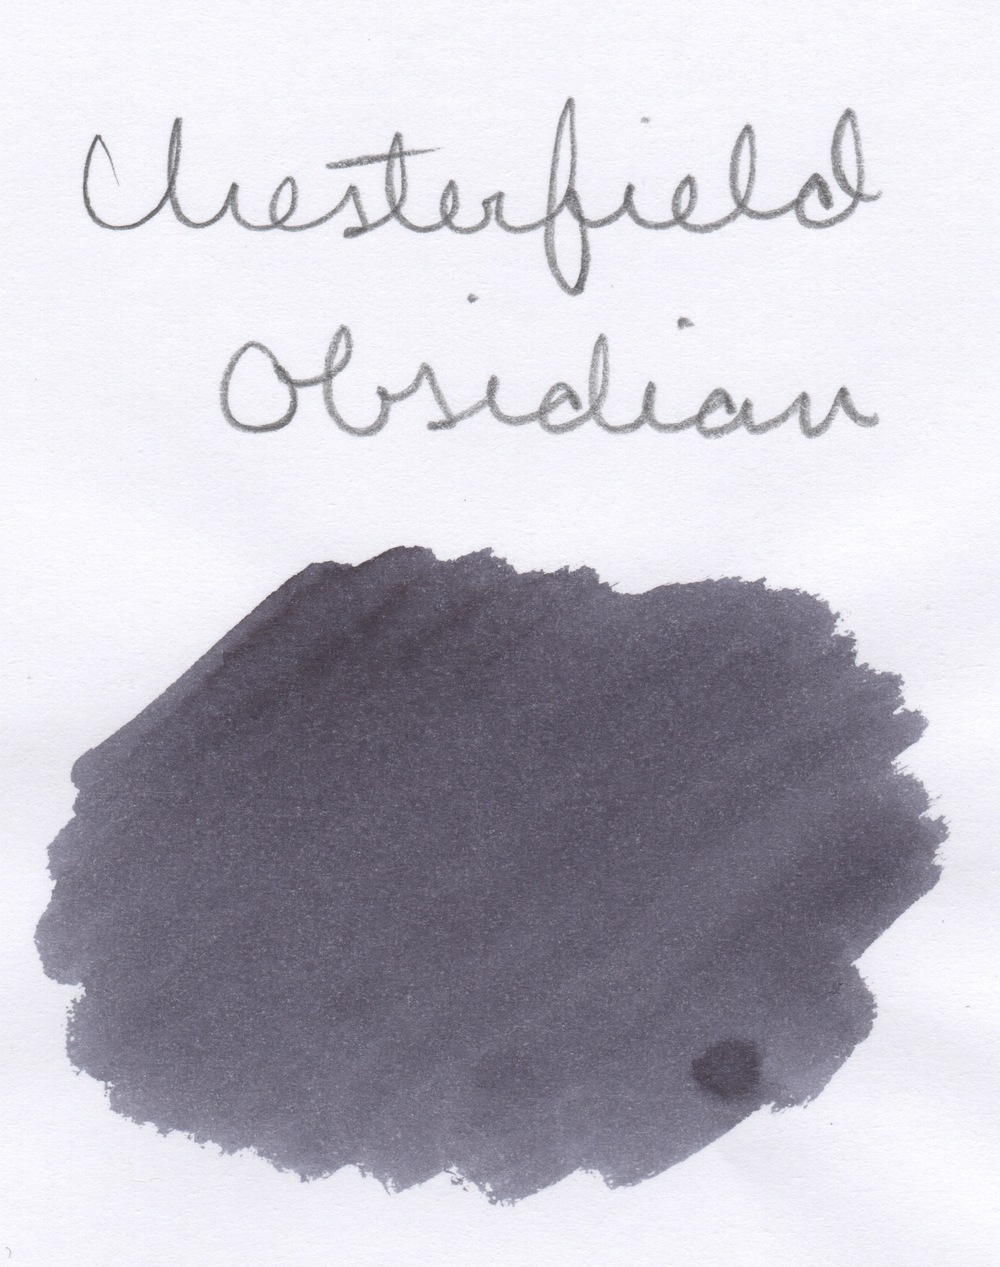 Chesterfield Obsidian.jpeg